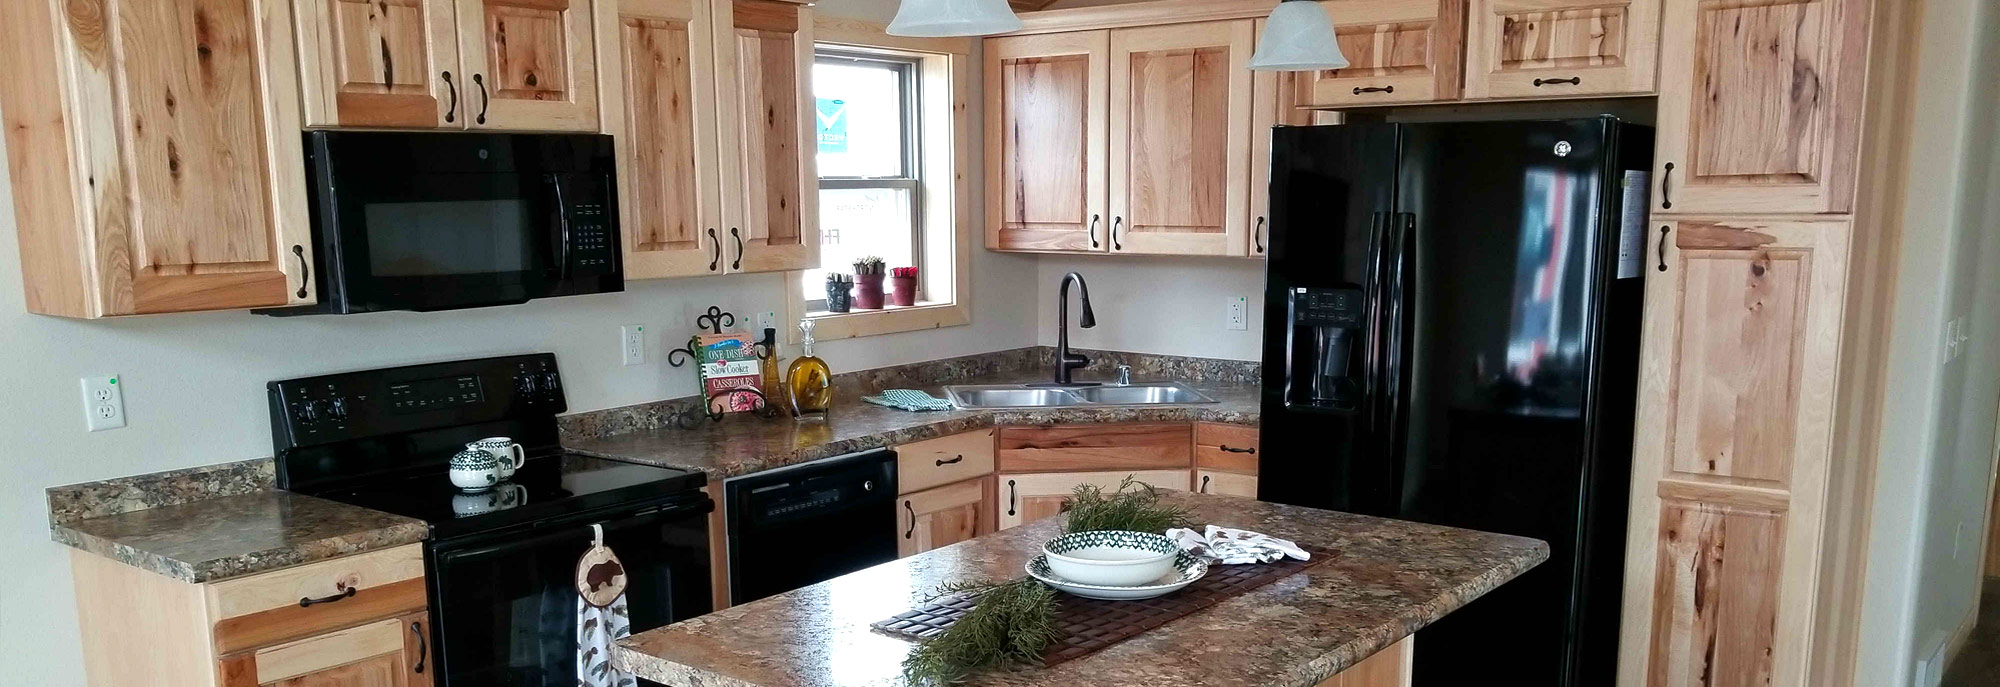 The kitchen of the Spicer Model Modular Home built by Factory Home Center